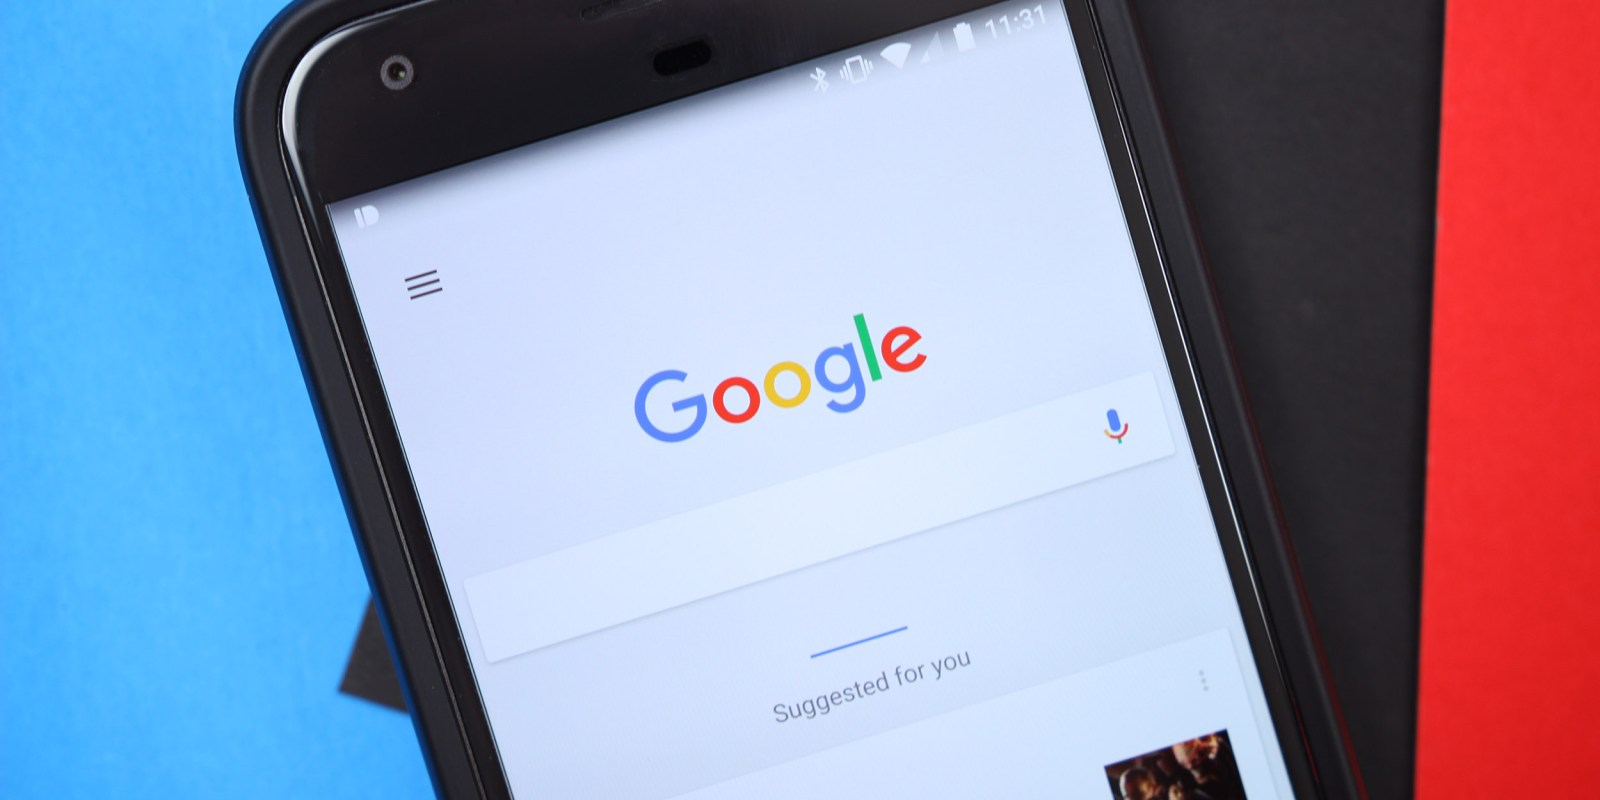 Google Search testing rounded cards, muted colors, and more on Android, iOS, mobile web